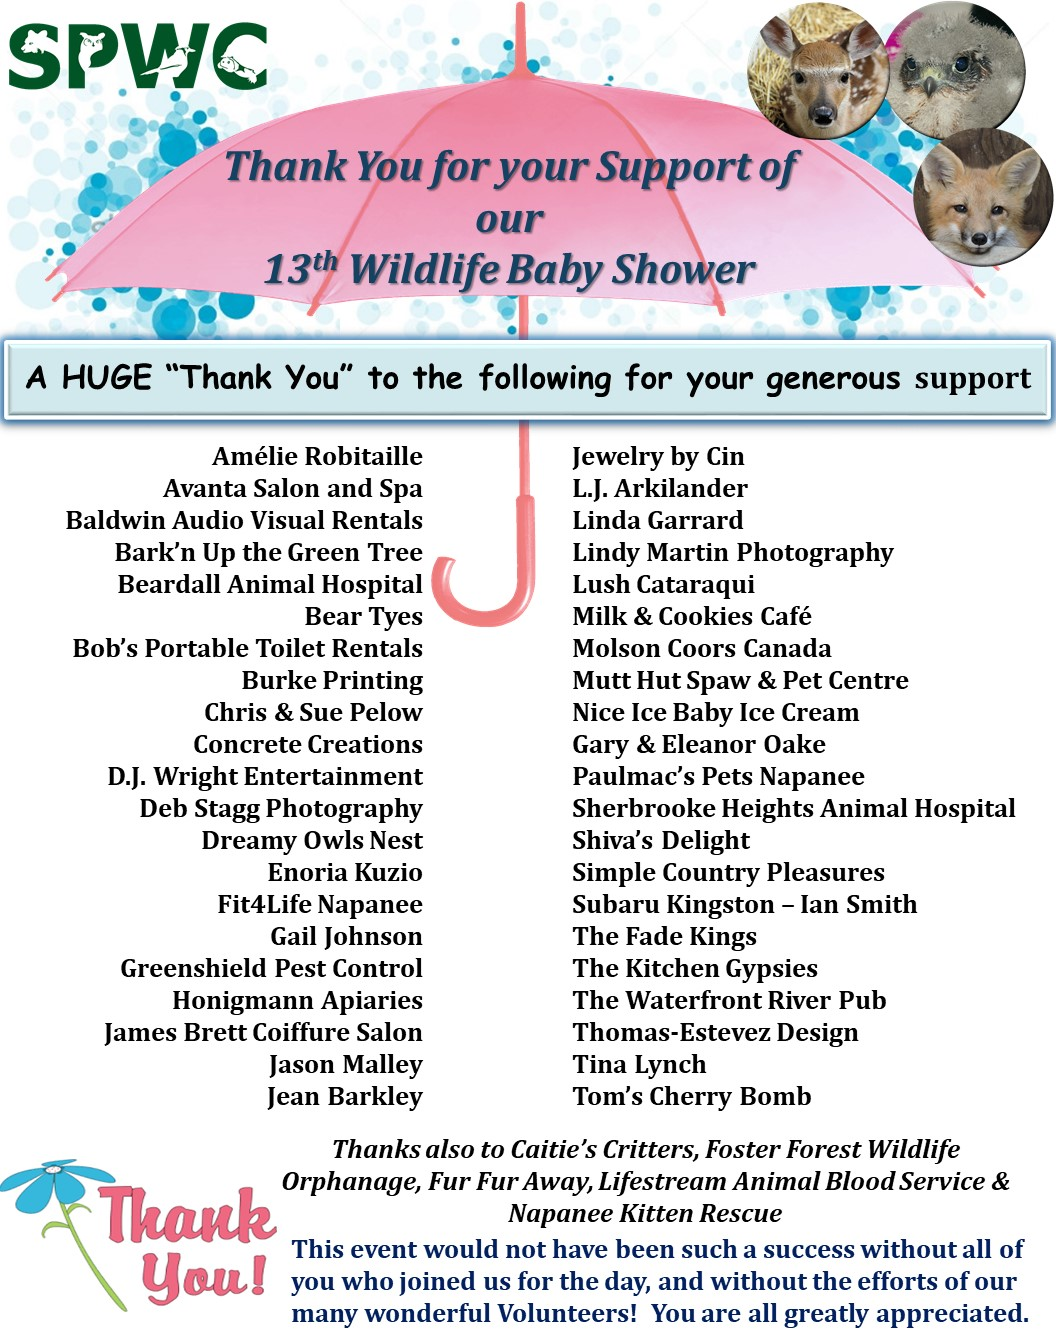 Thank You To All Of Our Media Supporters That Help Get The Word Out Community And Continually Support Efforts At SPWC